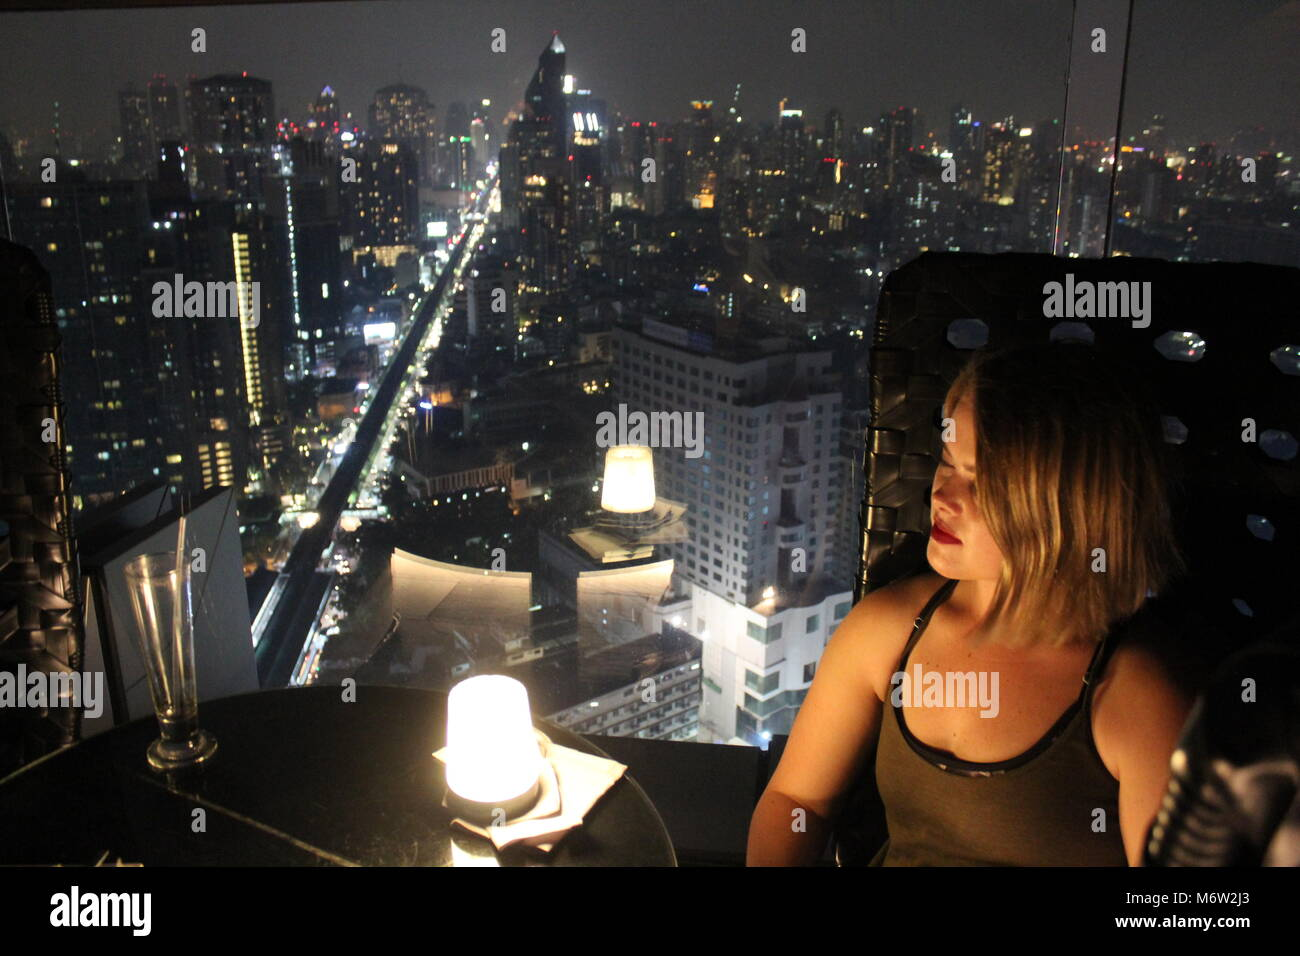 A view of the Bangkok city skyline with a woman enjoying it. - Stock Image